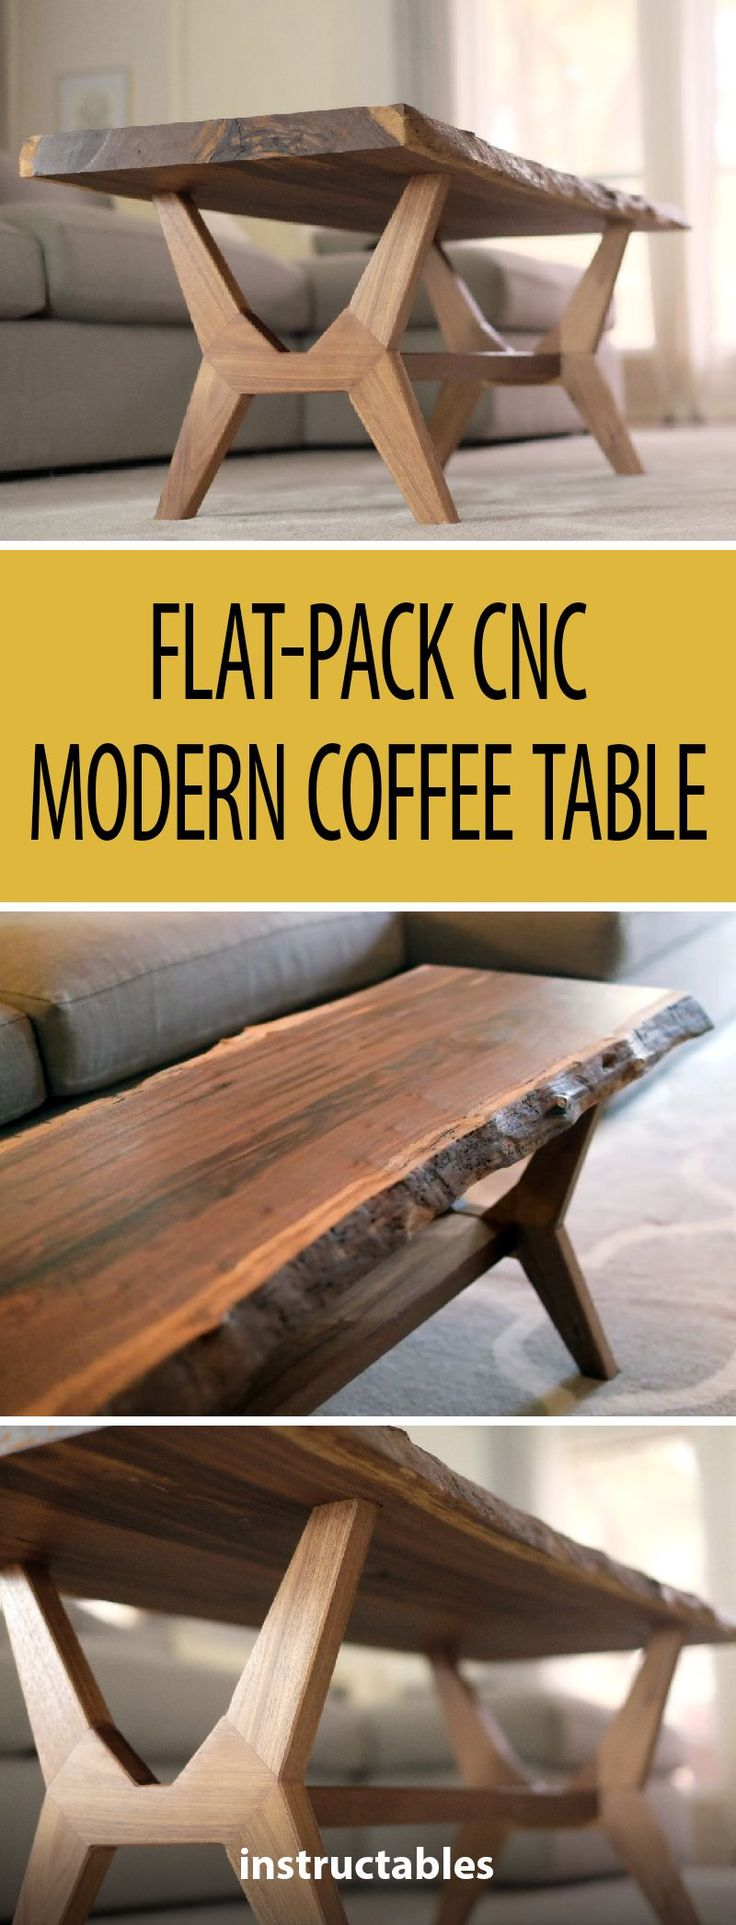 Flat-Pack CNC Modern Coffee Table #woodworking #f…